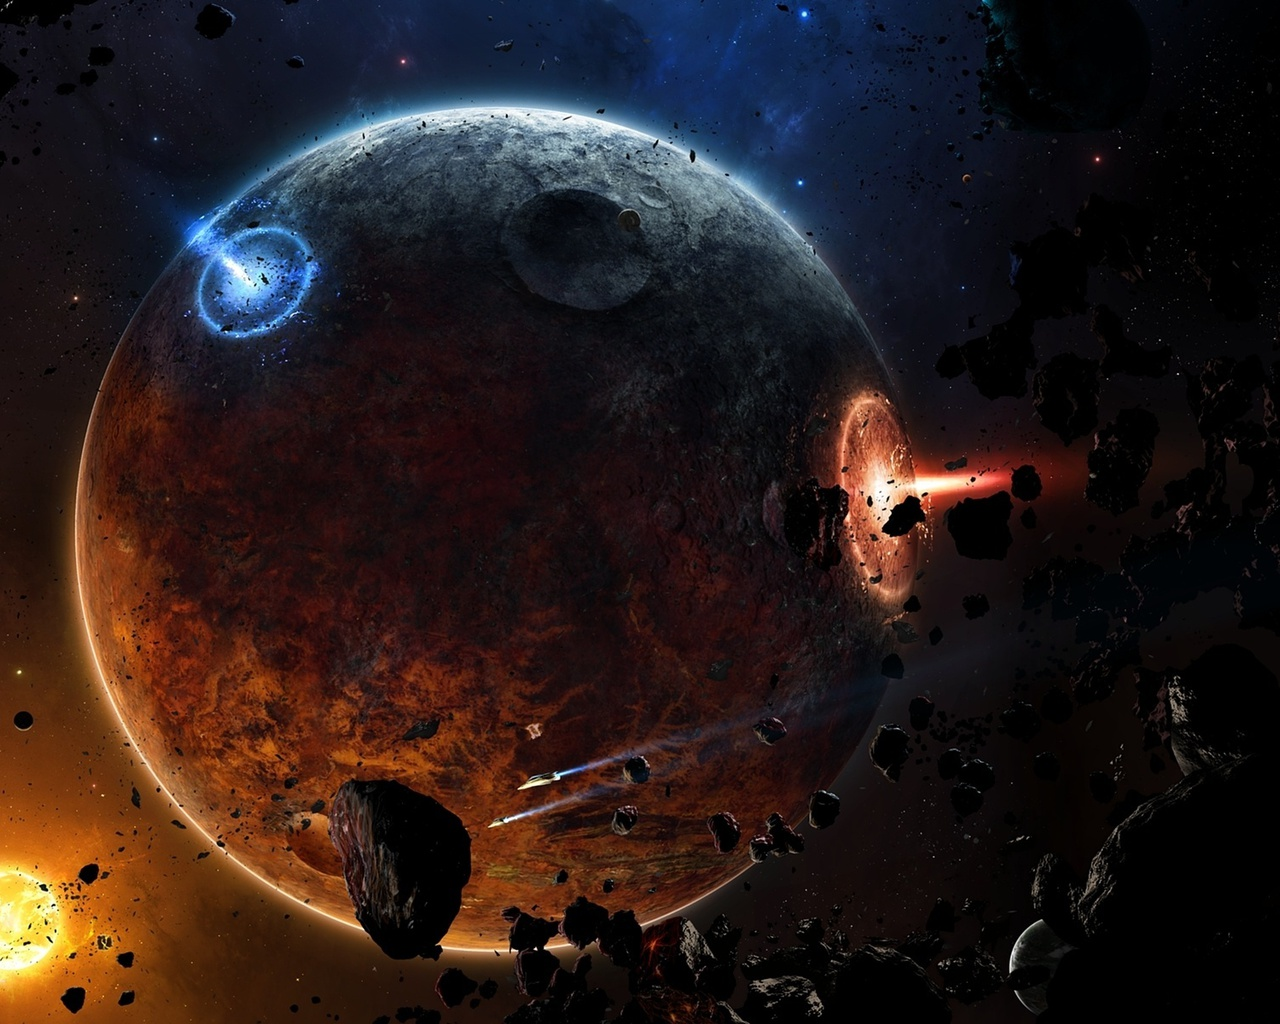 fire, planet, Spaceships, meteorites, astroides, sci fi